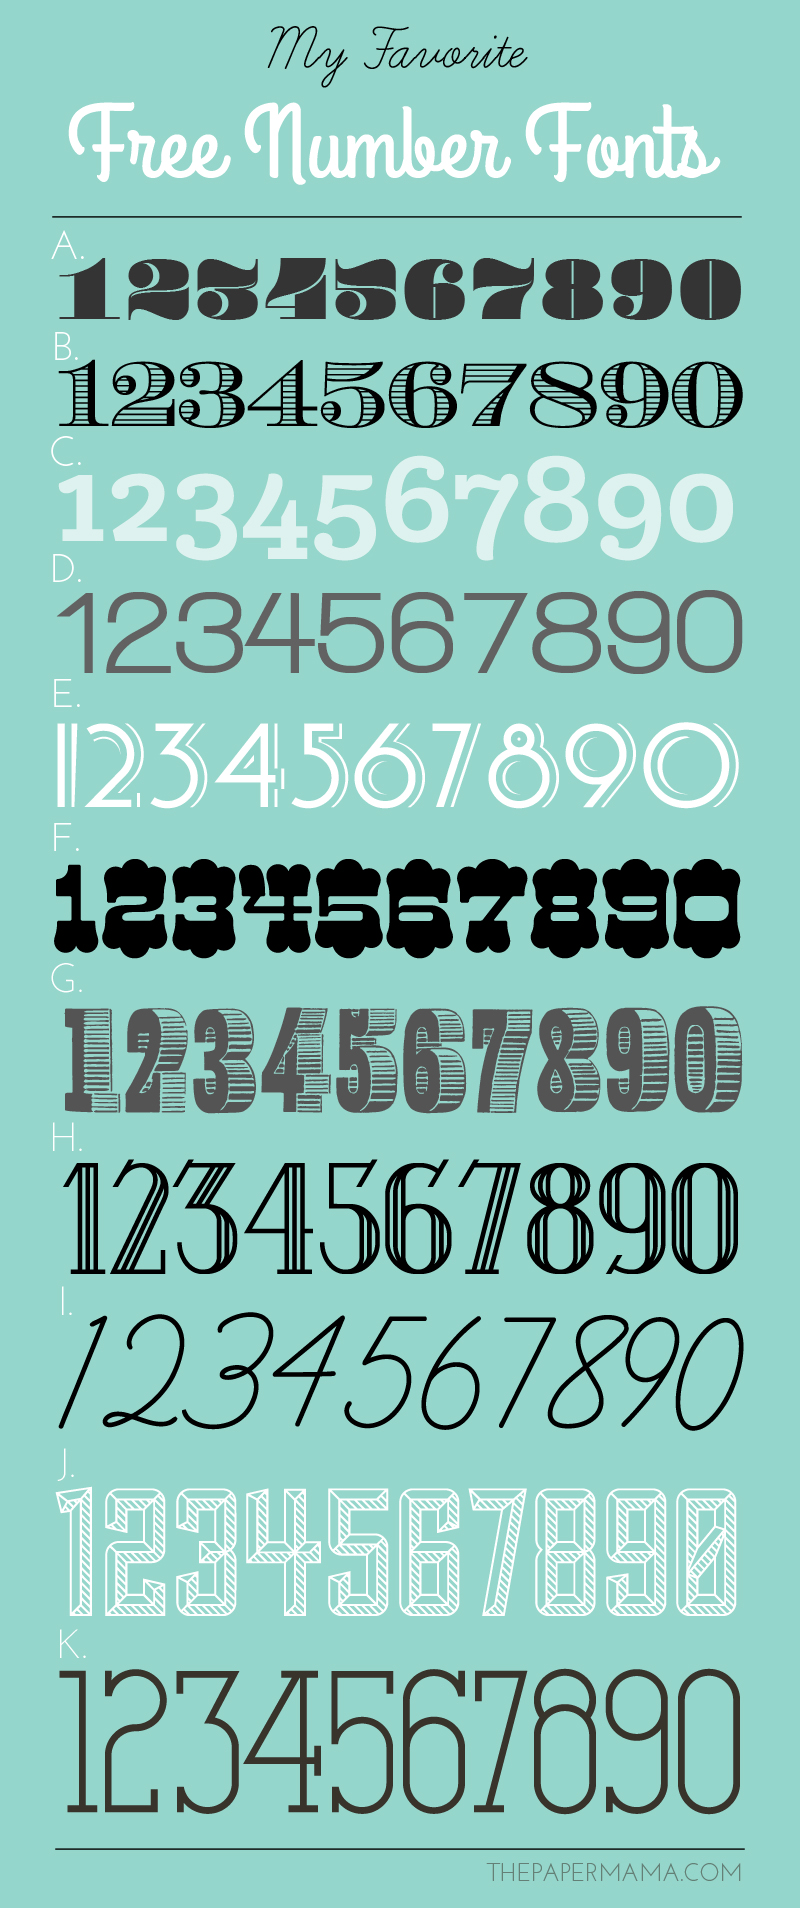 My Favorite Free Number Fonts!